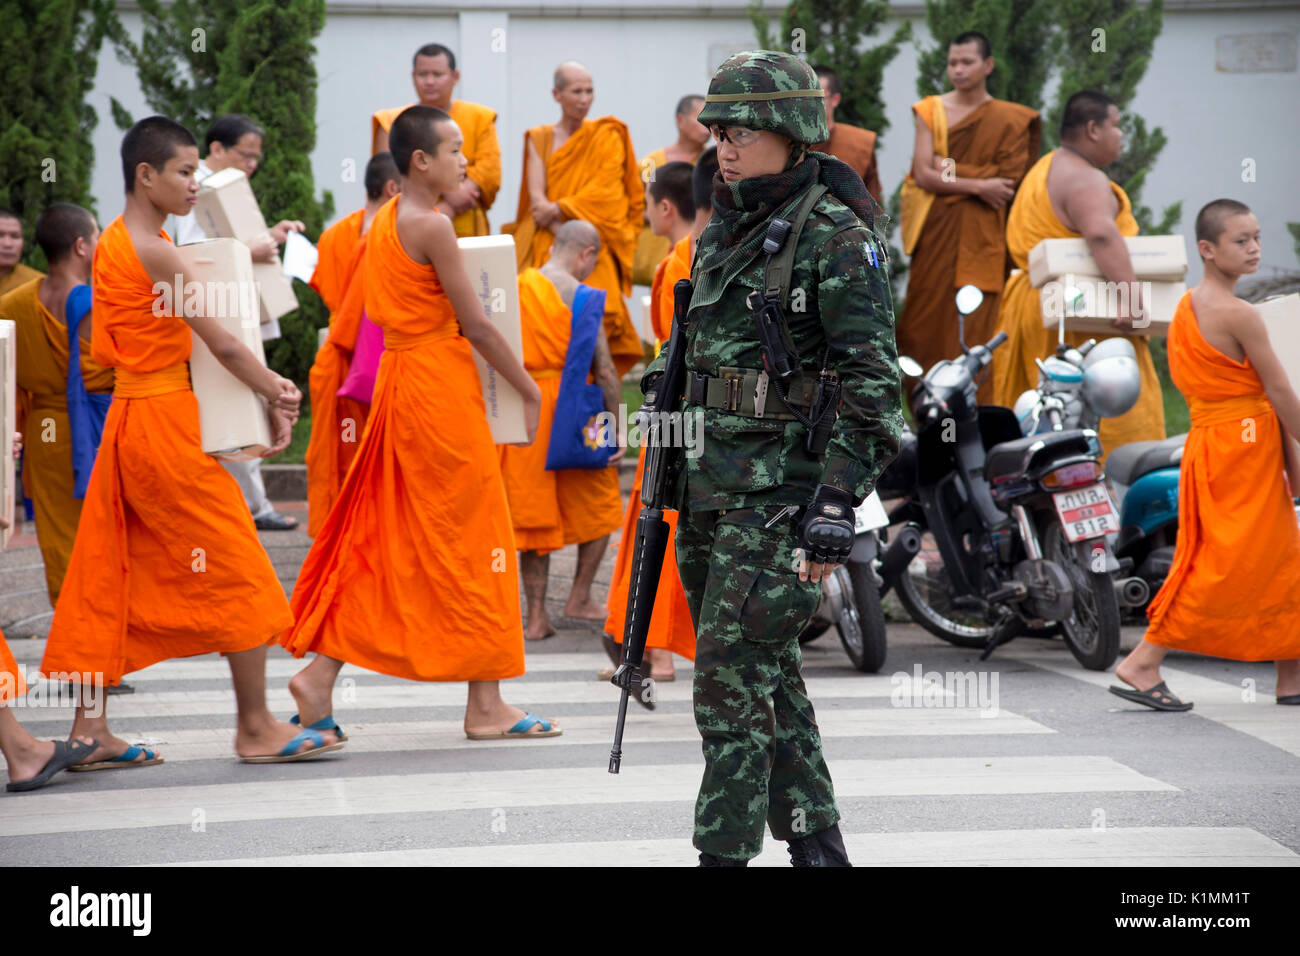 buddhist singles in soldier Soldiers grove's best 100% free buddhist dating site meet thousands of single buddhists in soldiers grove with mingle2's free buddhist personal ads and chat rooms.